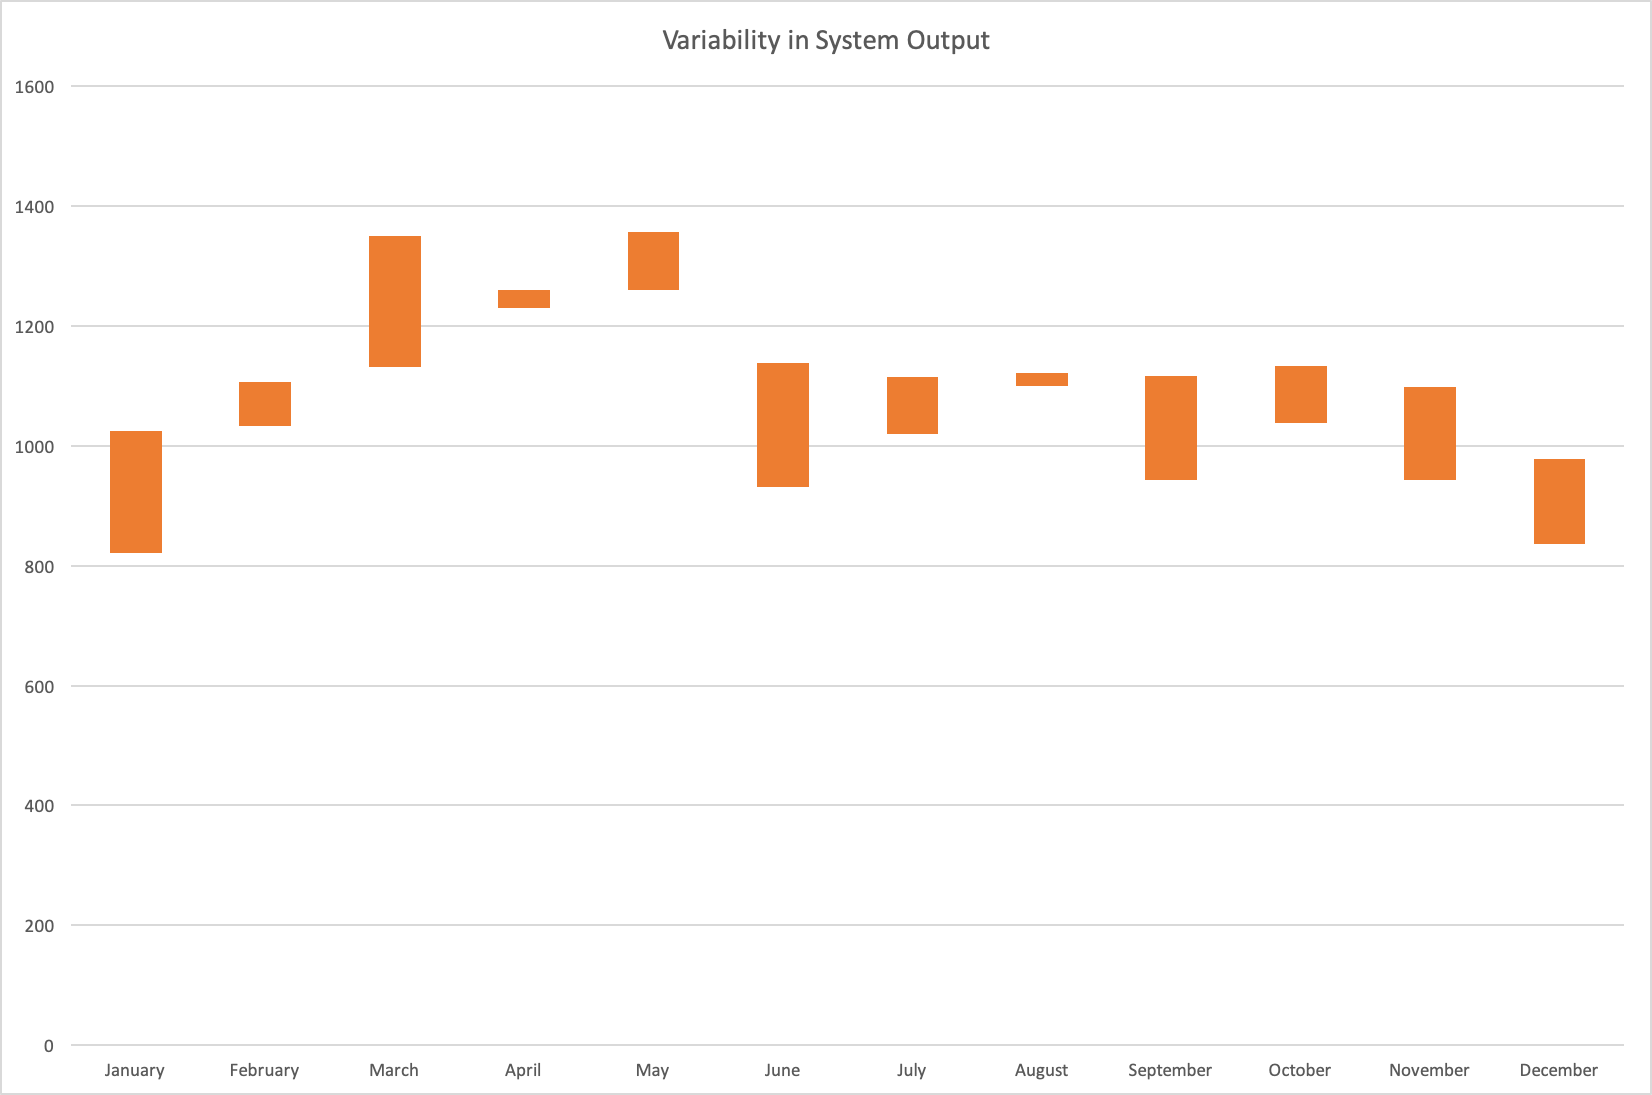 Photovoltaic System Monthly Variability